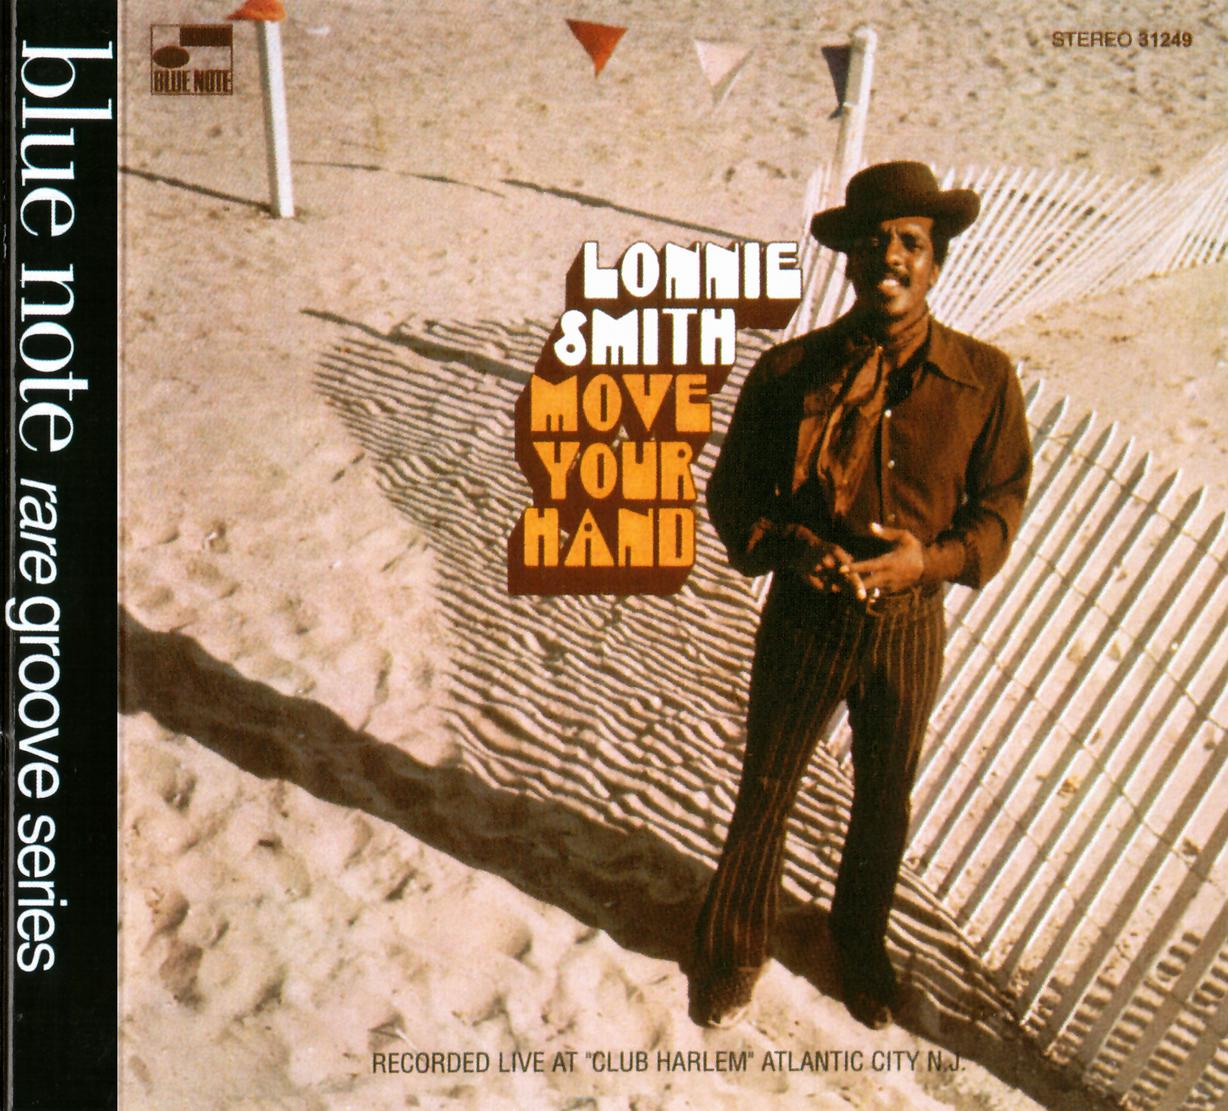 Lonnie Smith - Move Your Hand (1969) {Blue Note Rare Goove Series}